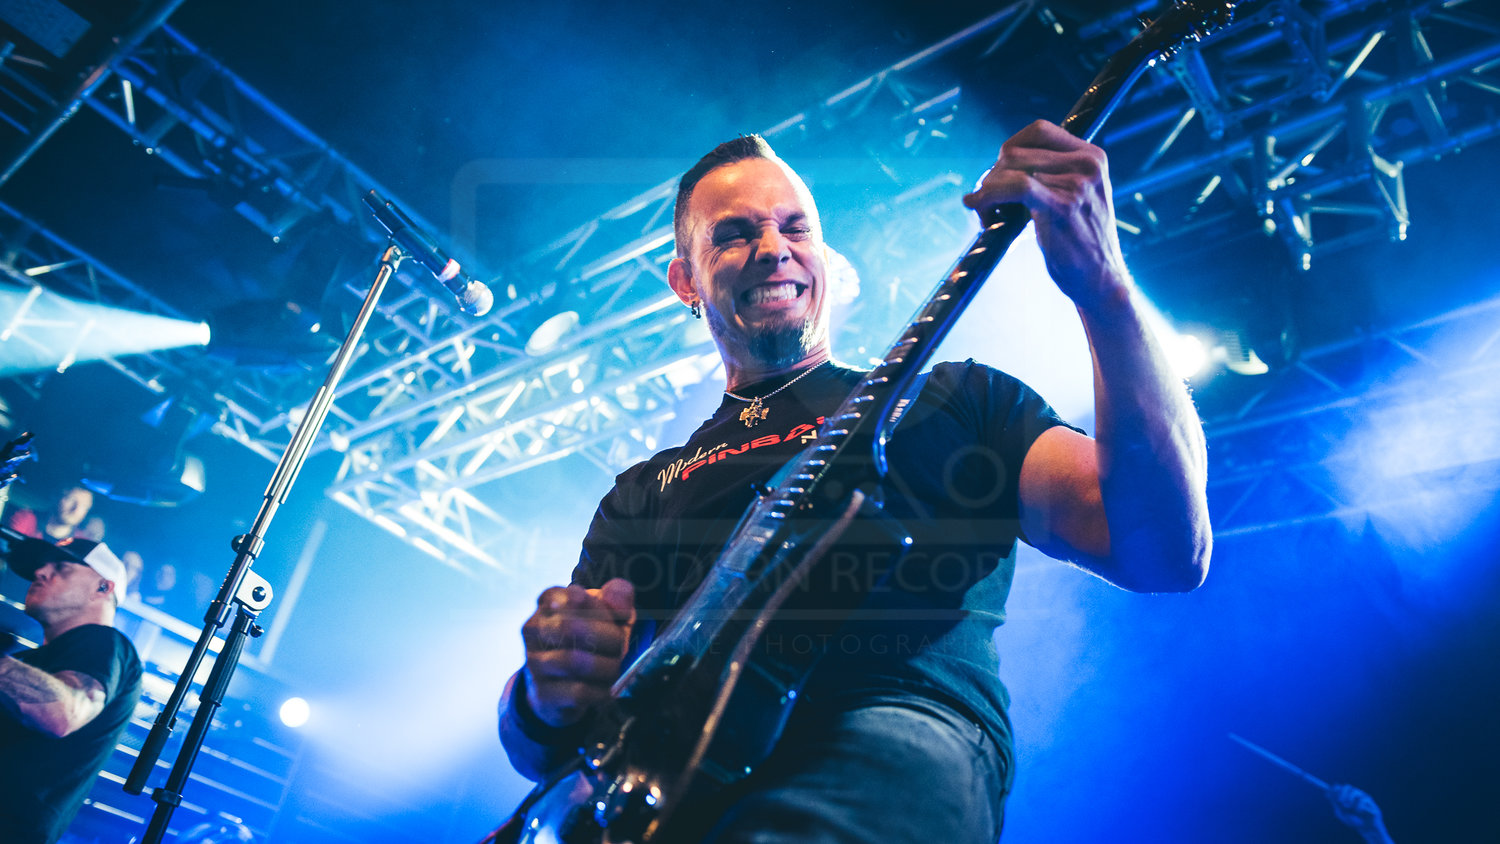 TREMONTI PERFORMING AT EDINBURGH'S LIQUID ROOMS - 06.12.2018 PICTURE BY: LEWIS MILNE PHOTOGRAPHY